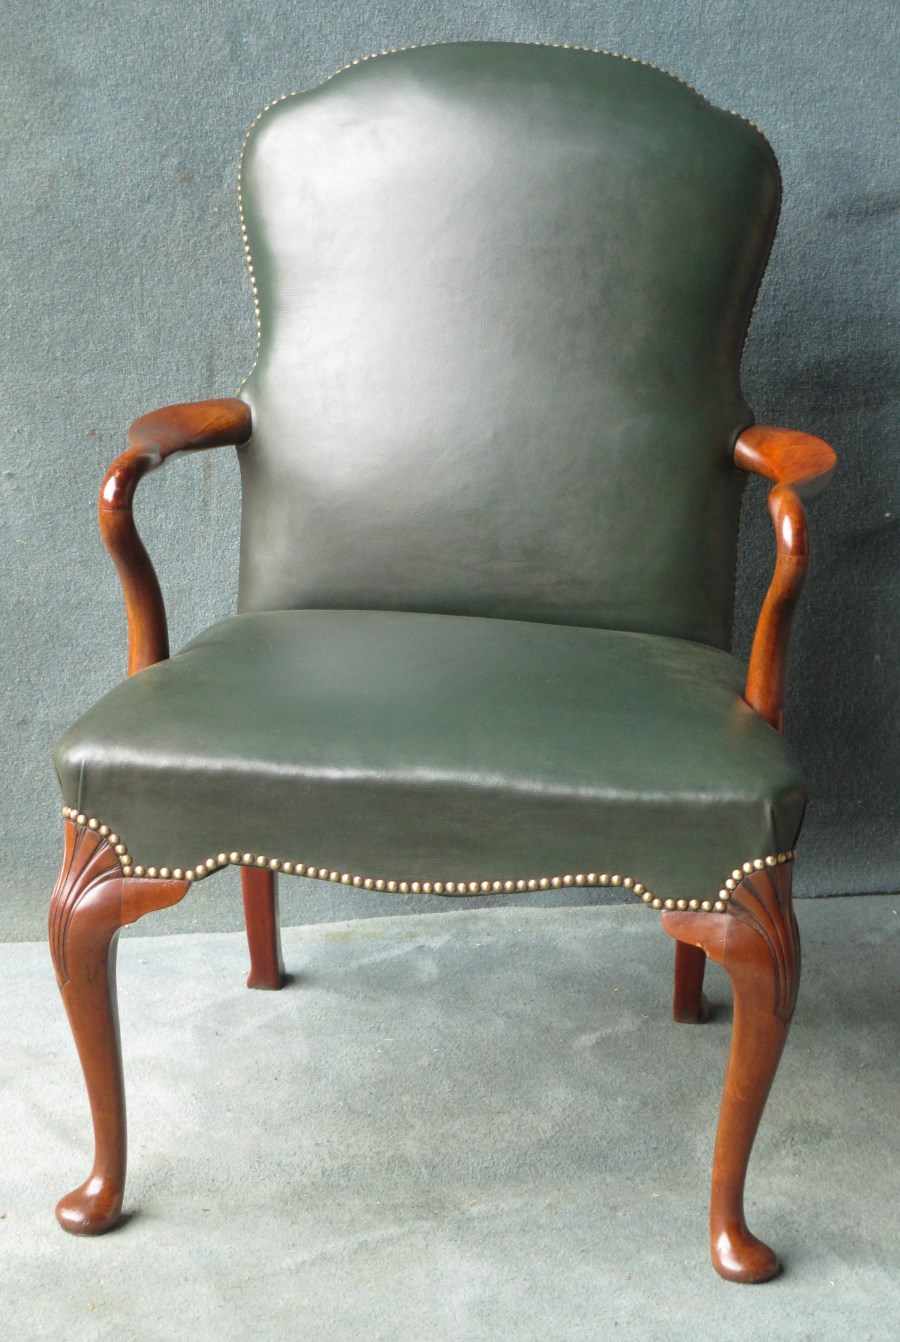 Queen Anne style desk arm chair in hide